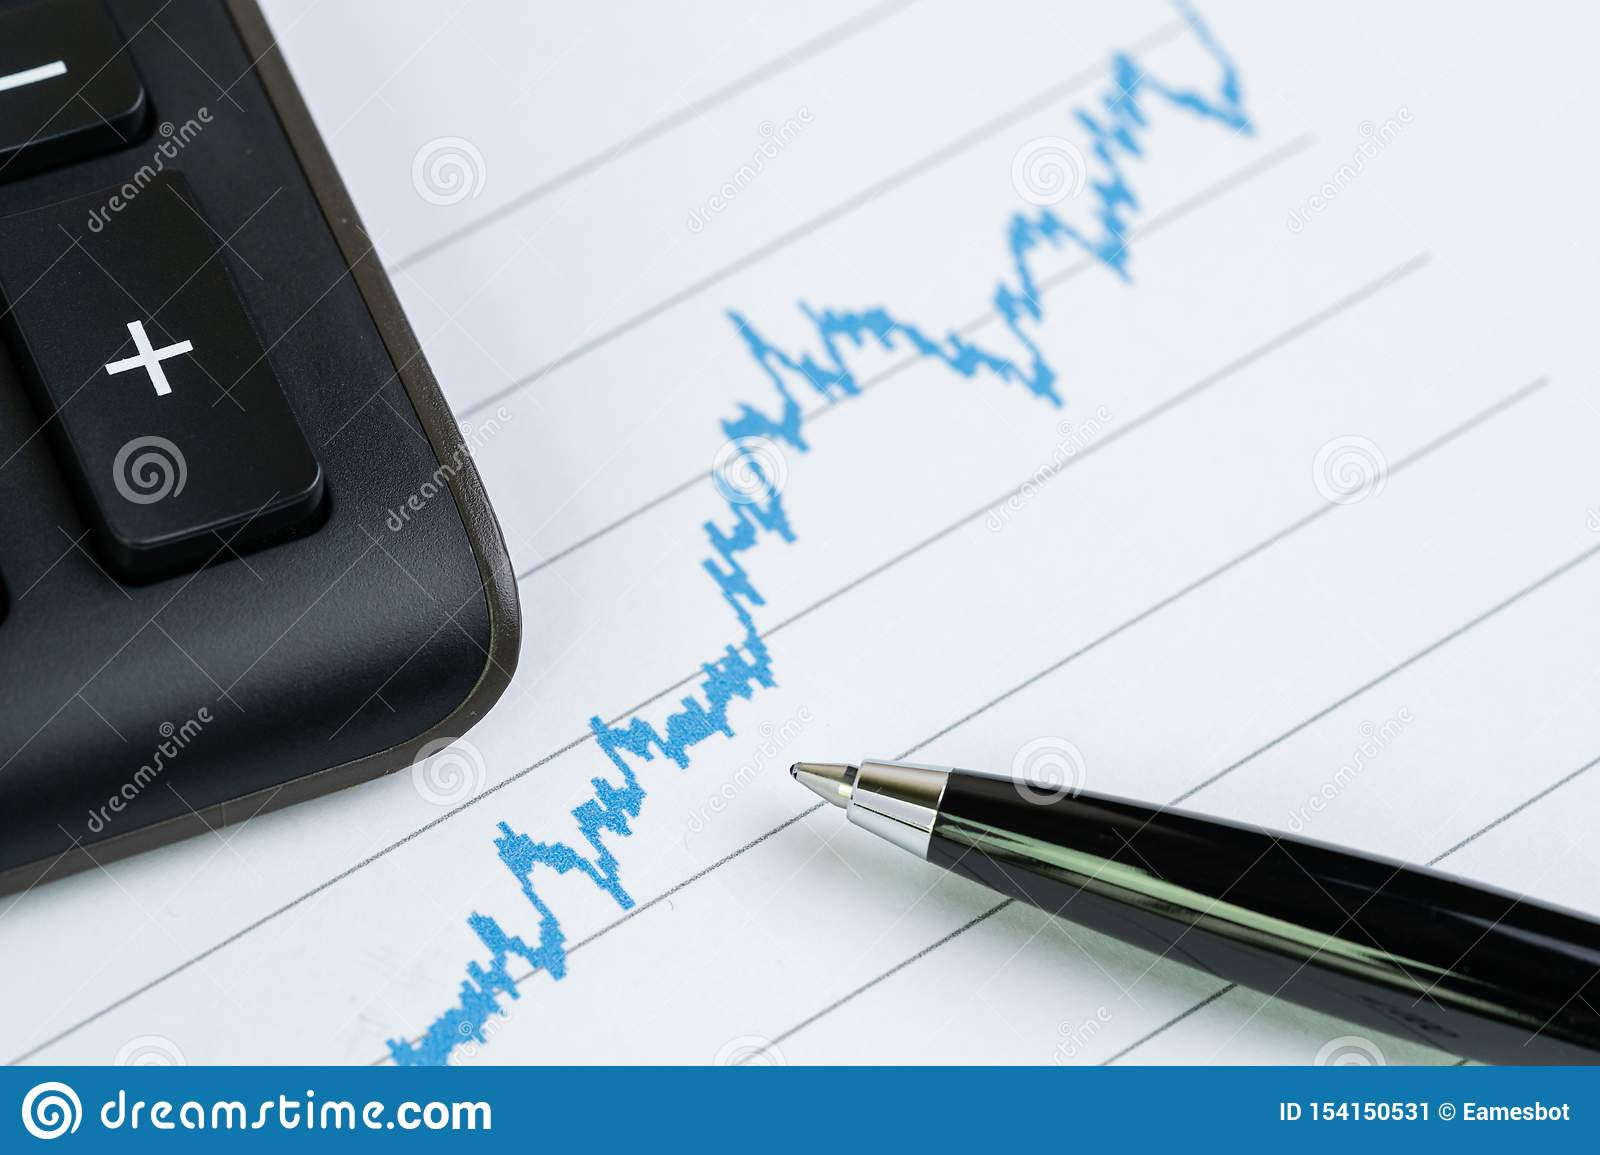 Stock price growth chart with calculator and pen using as financial analysis, stock market report or information for investment